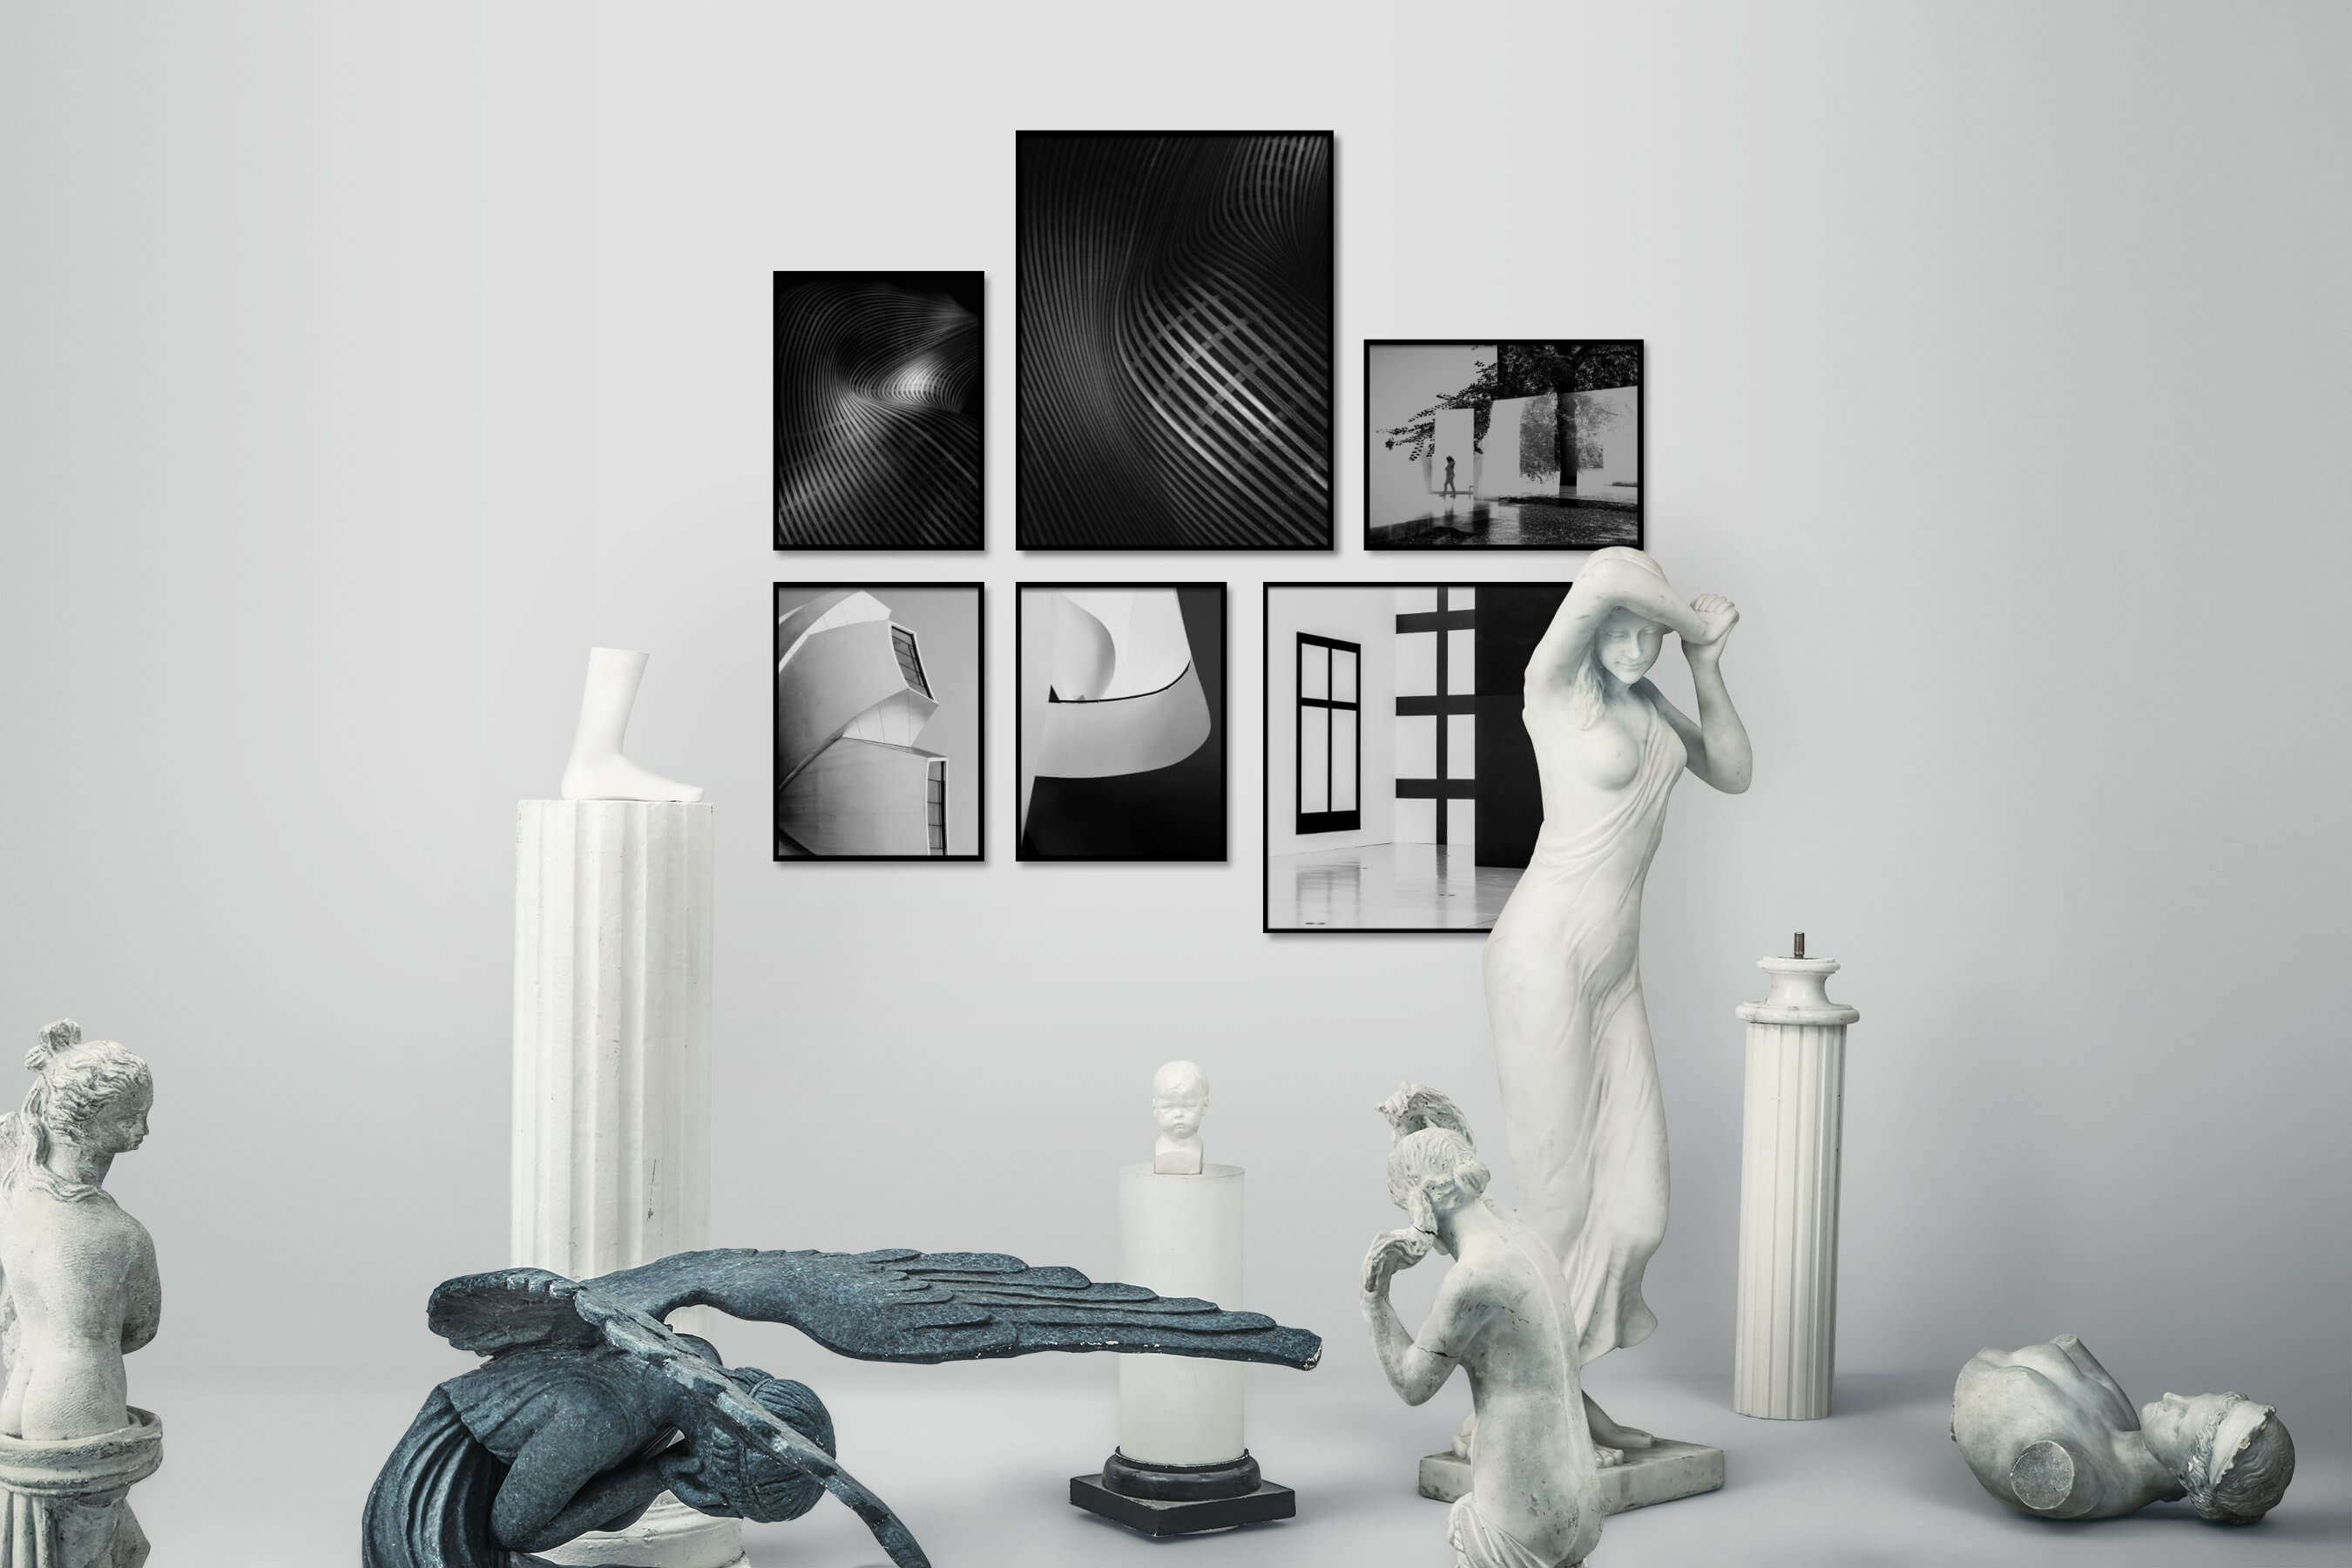 Gallery wall idea with six framed pictures arranged on a wall depicting Black & White, For the Minimalist, For the Moderate, and Artsy